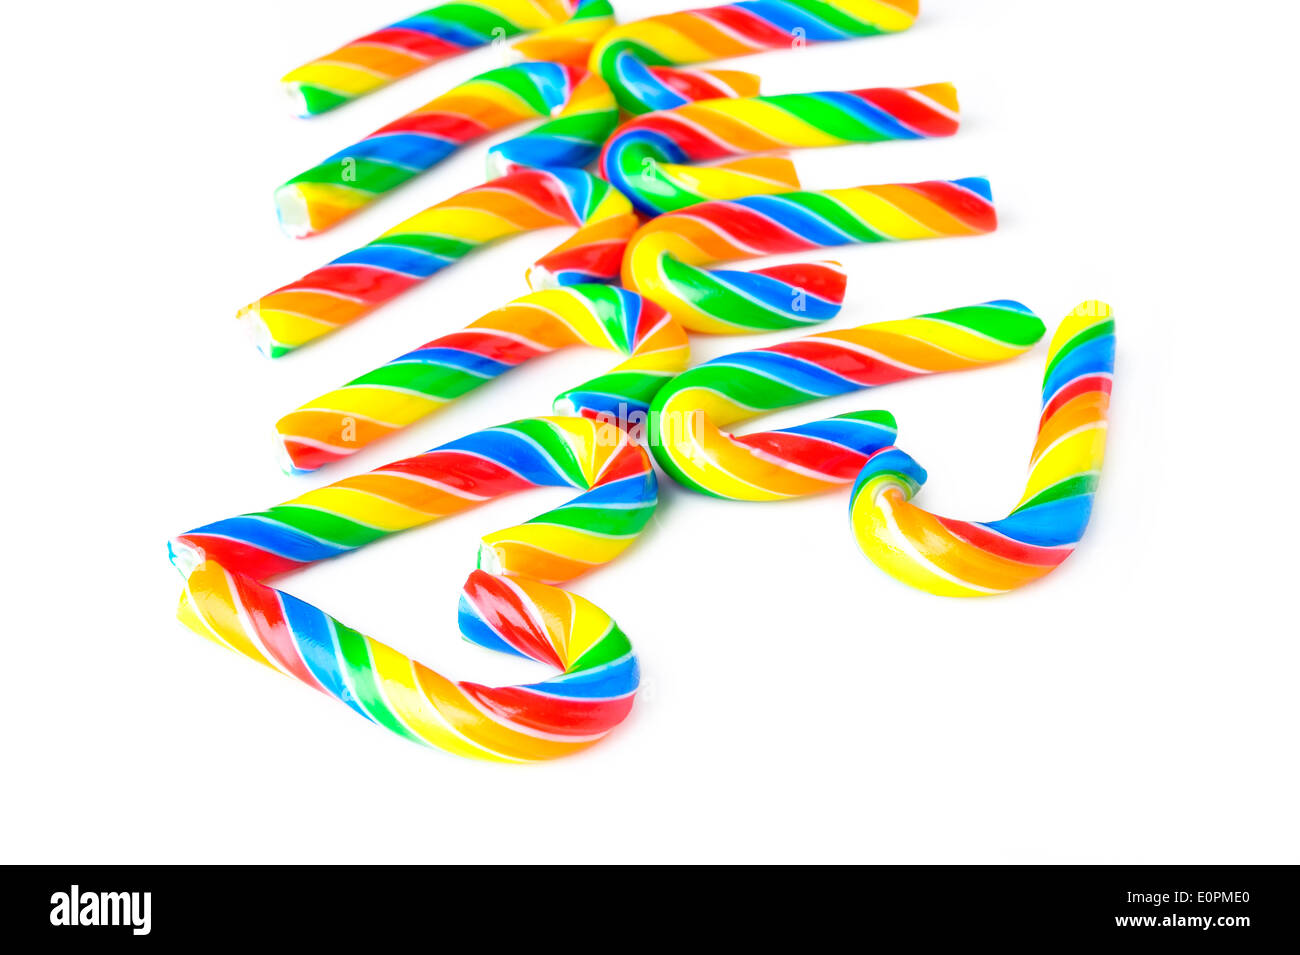 candy canes in a heart shape on a white - Stock Image